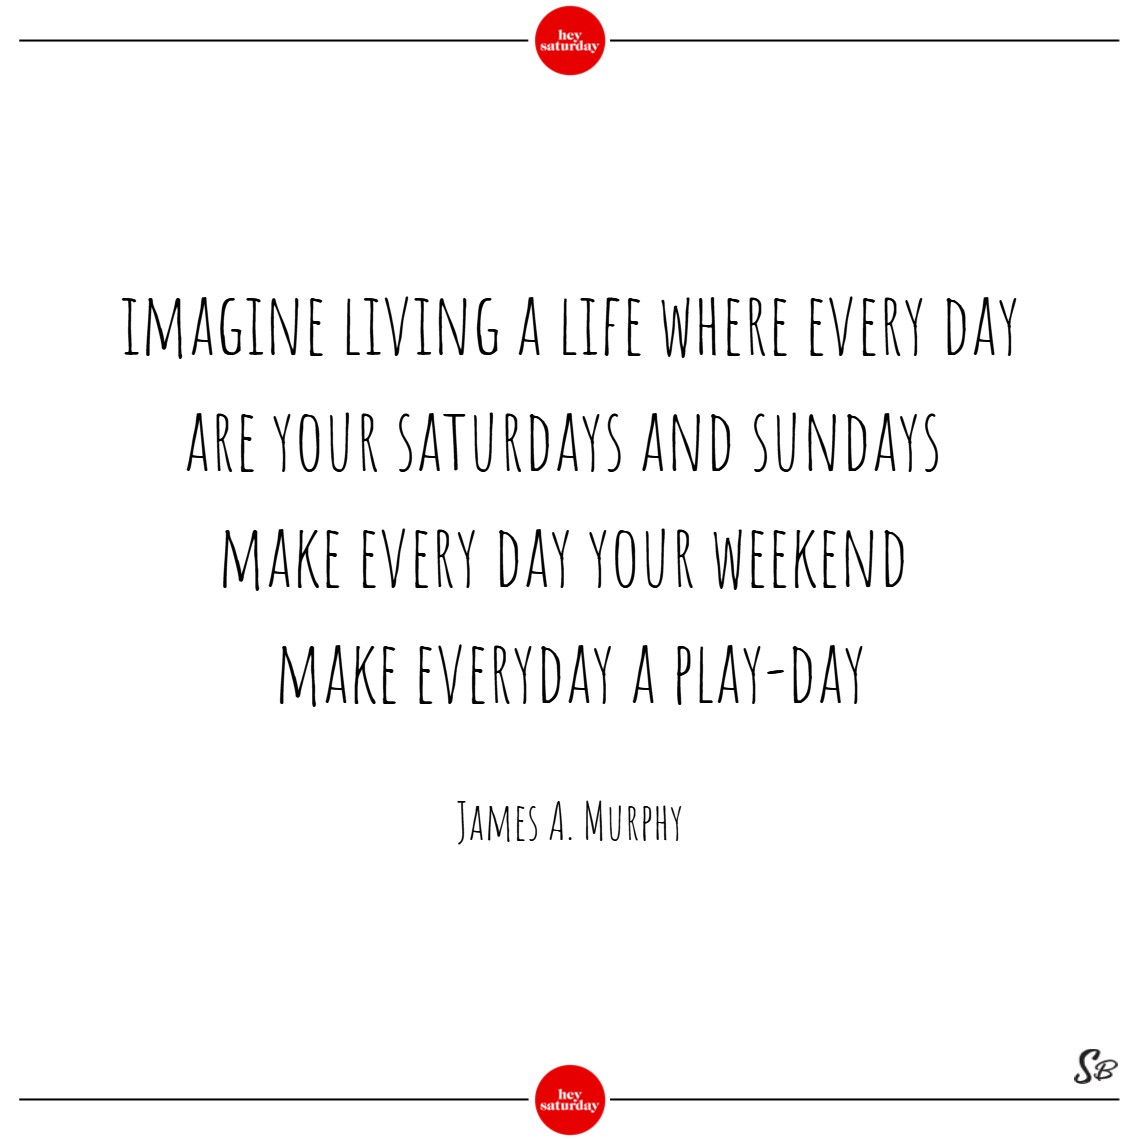 Imagine living a life where every day are your saturdays and sundays. make every day your weekend. make everyday a play day. – james a. murphy saturday quotes